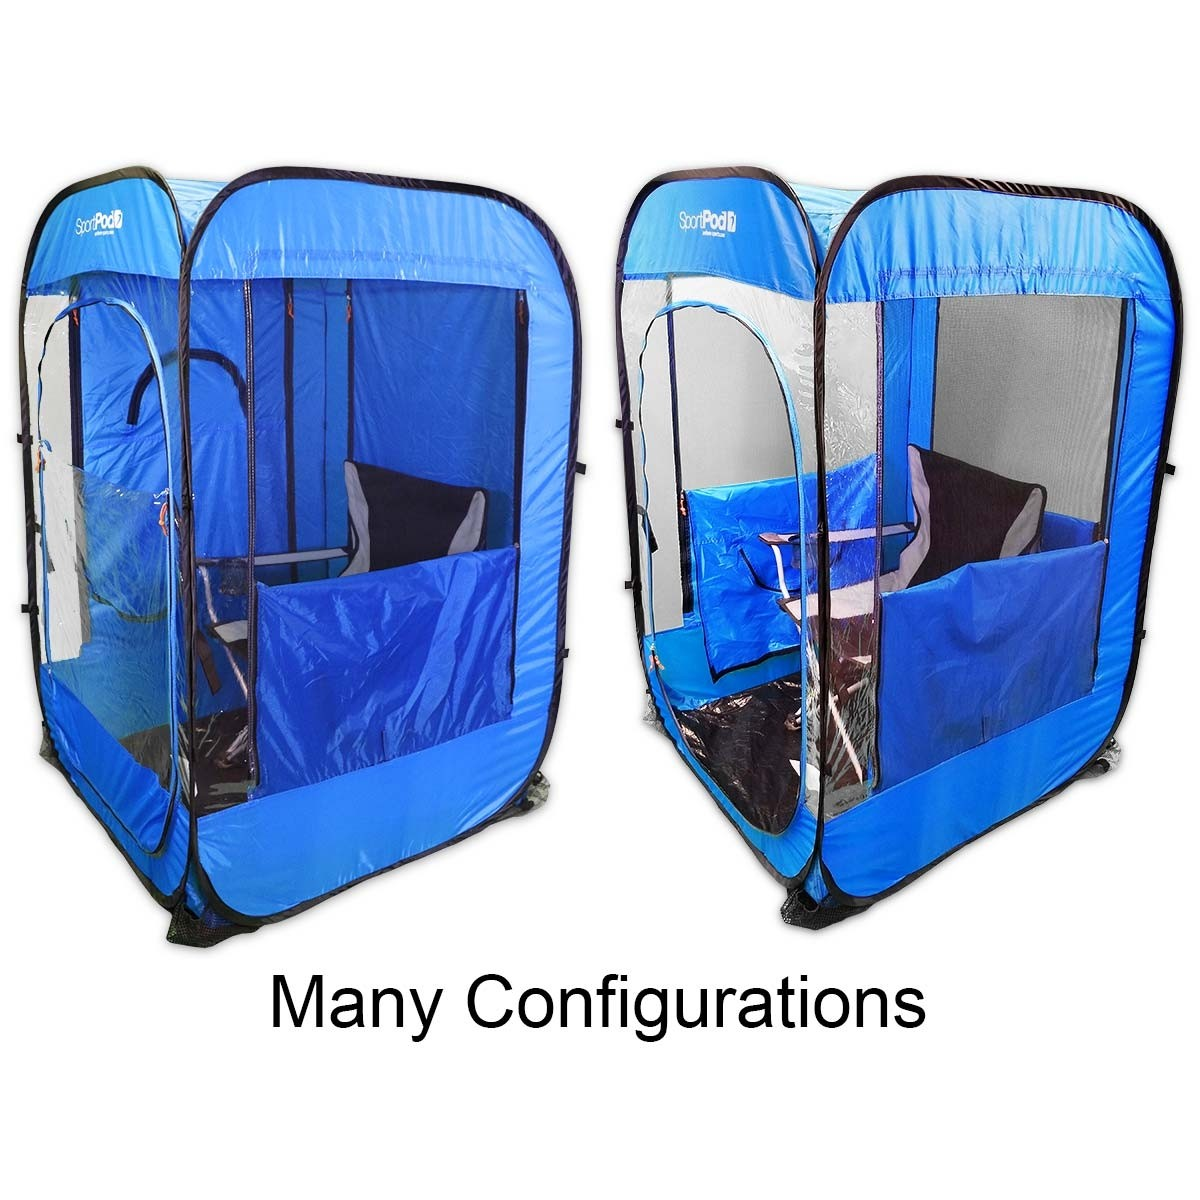 chair under cover what a solopod undercover all weather sportpod pop up tent